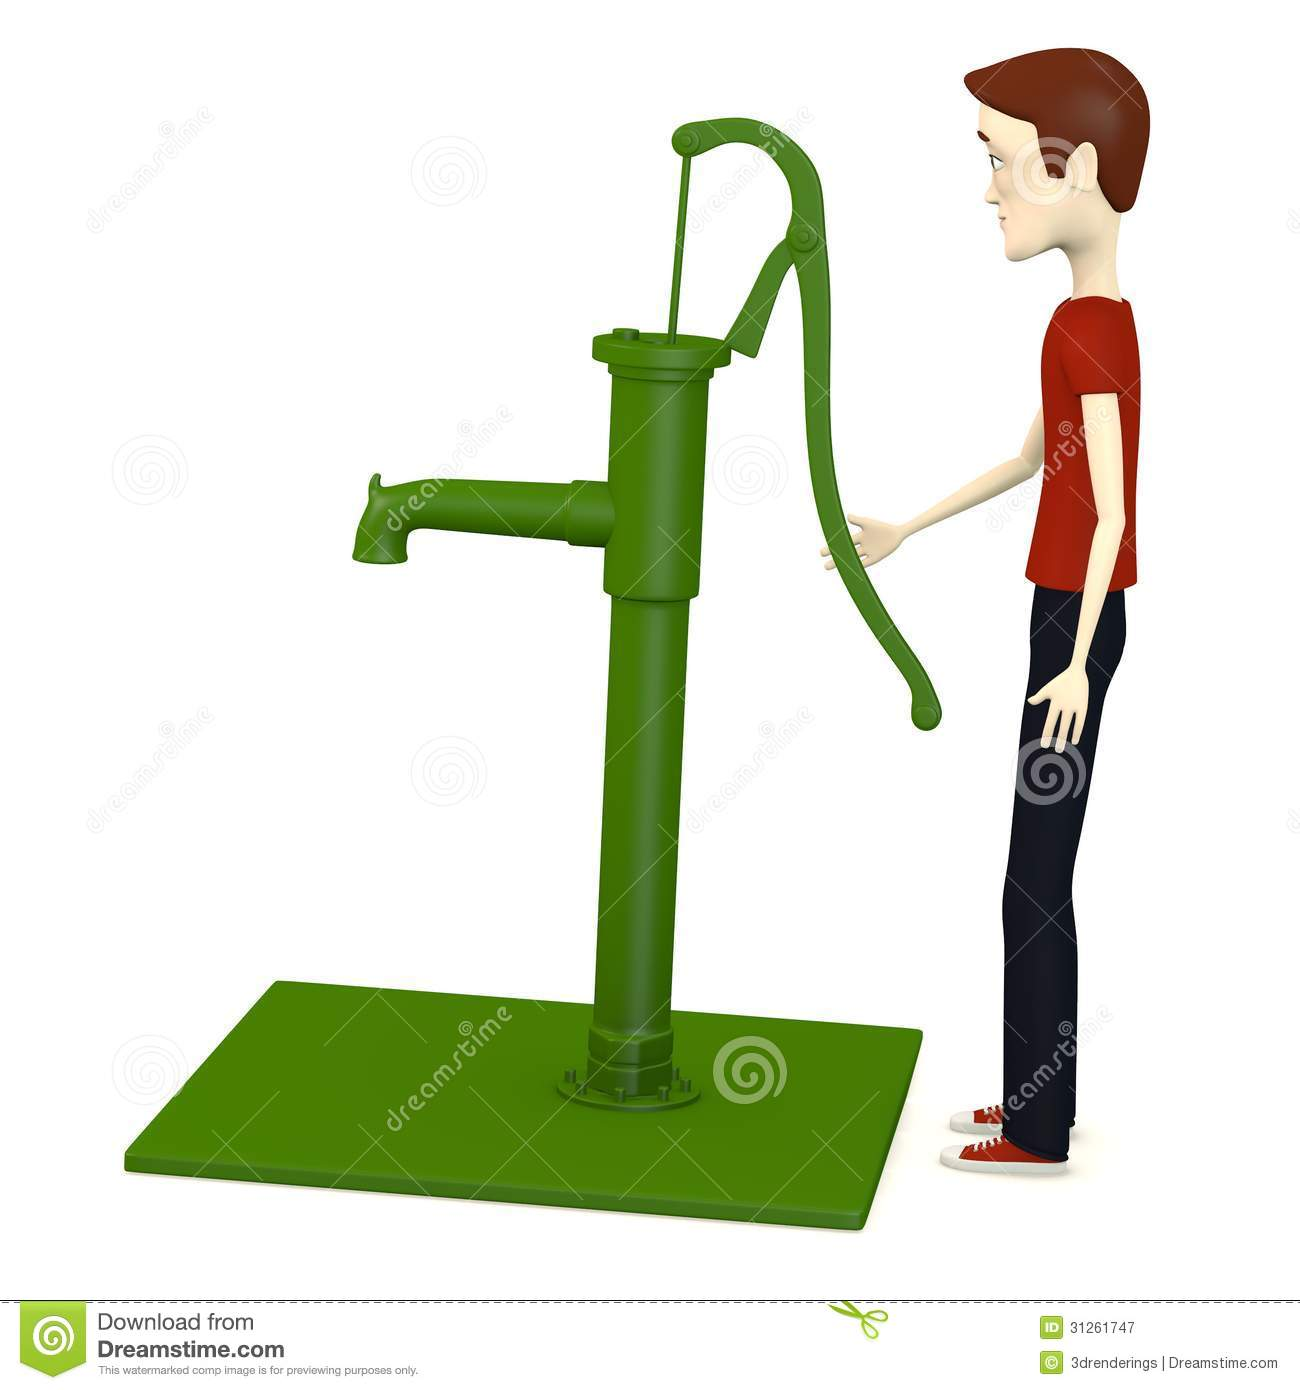 Water well pump clipart.